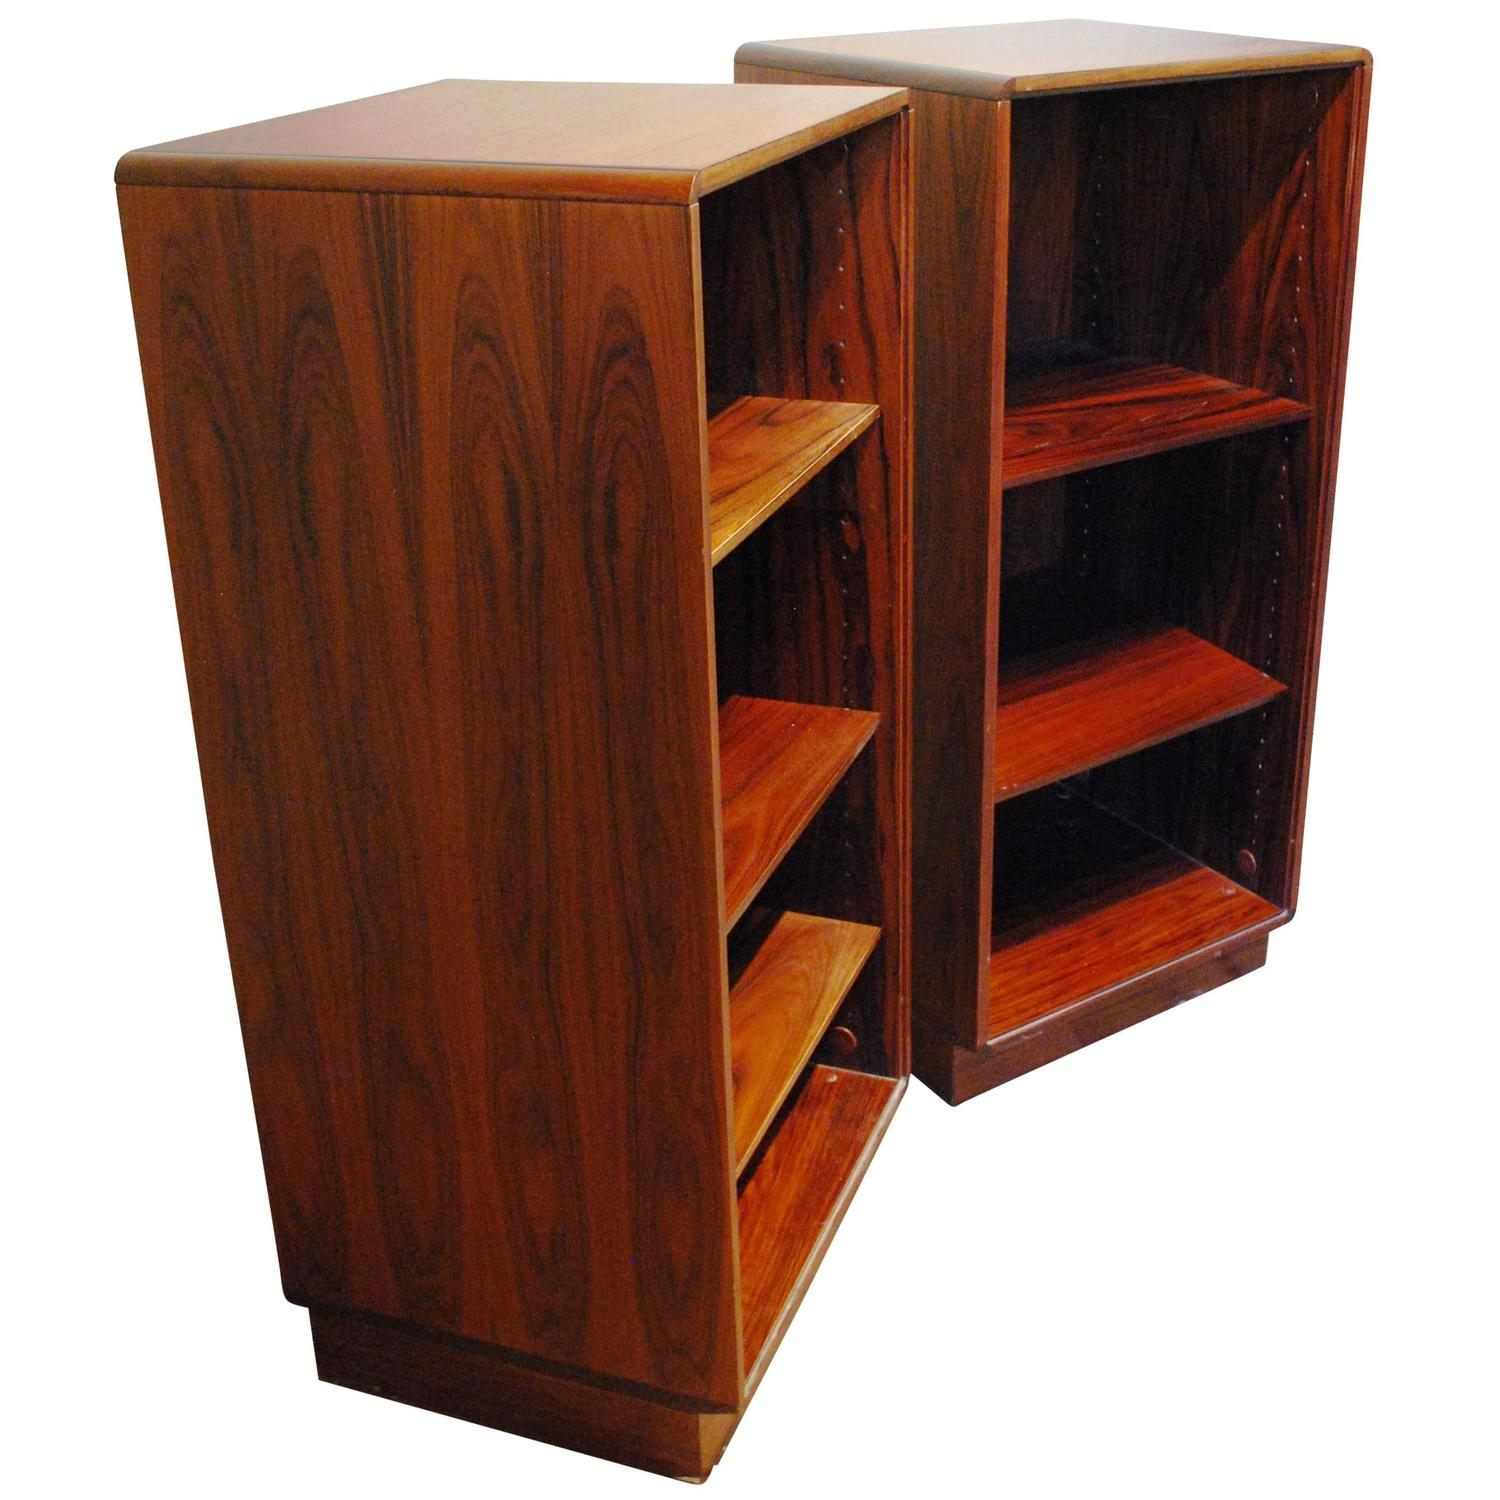 bookshelf chair for sale 8 dining table set pair of rosewood danish modern bookcases circa 1960